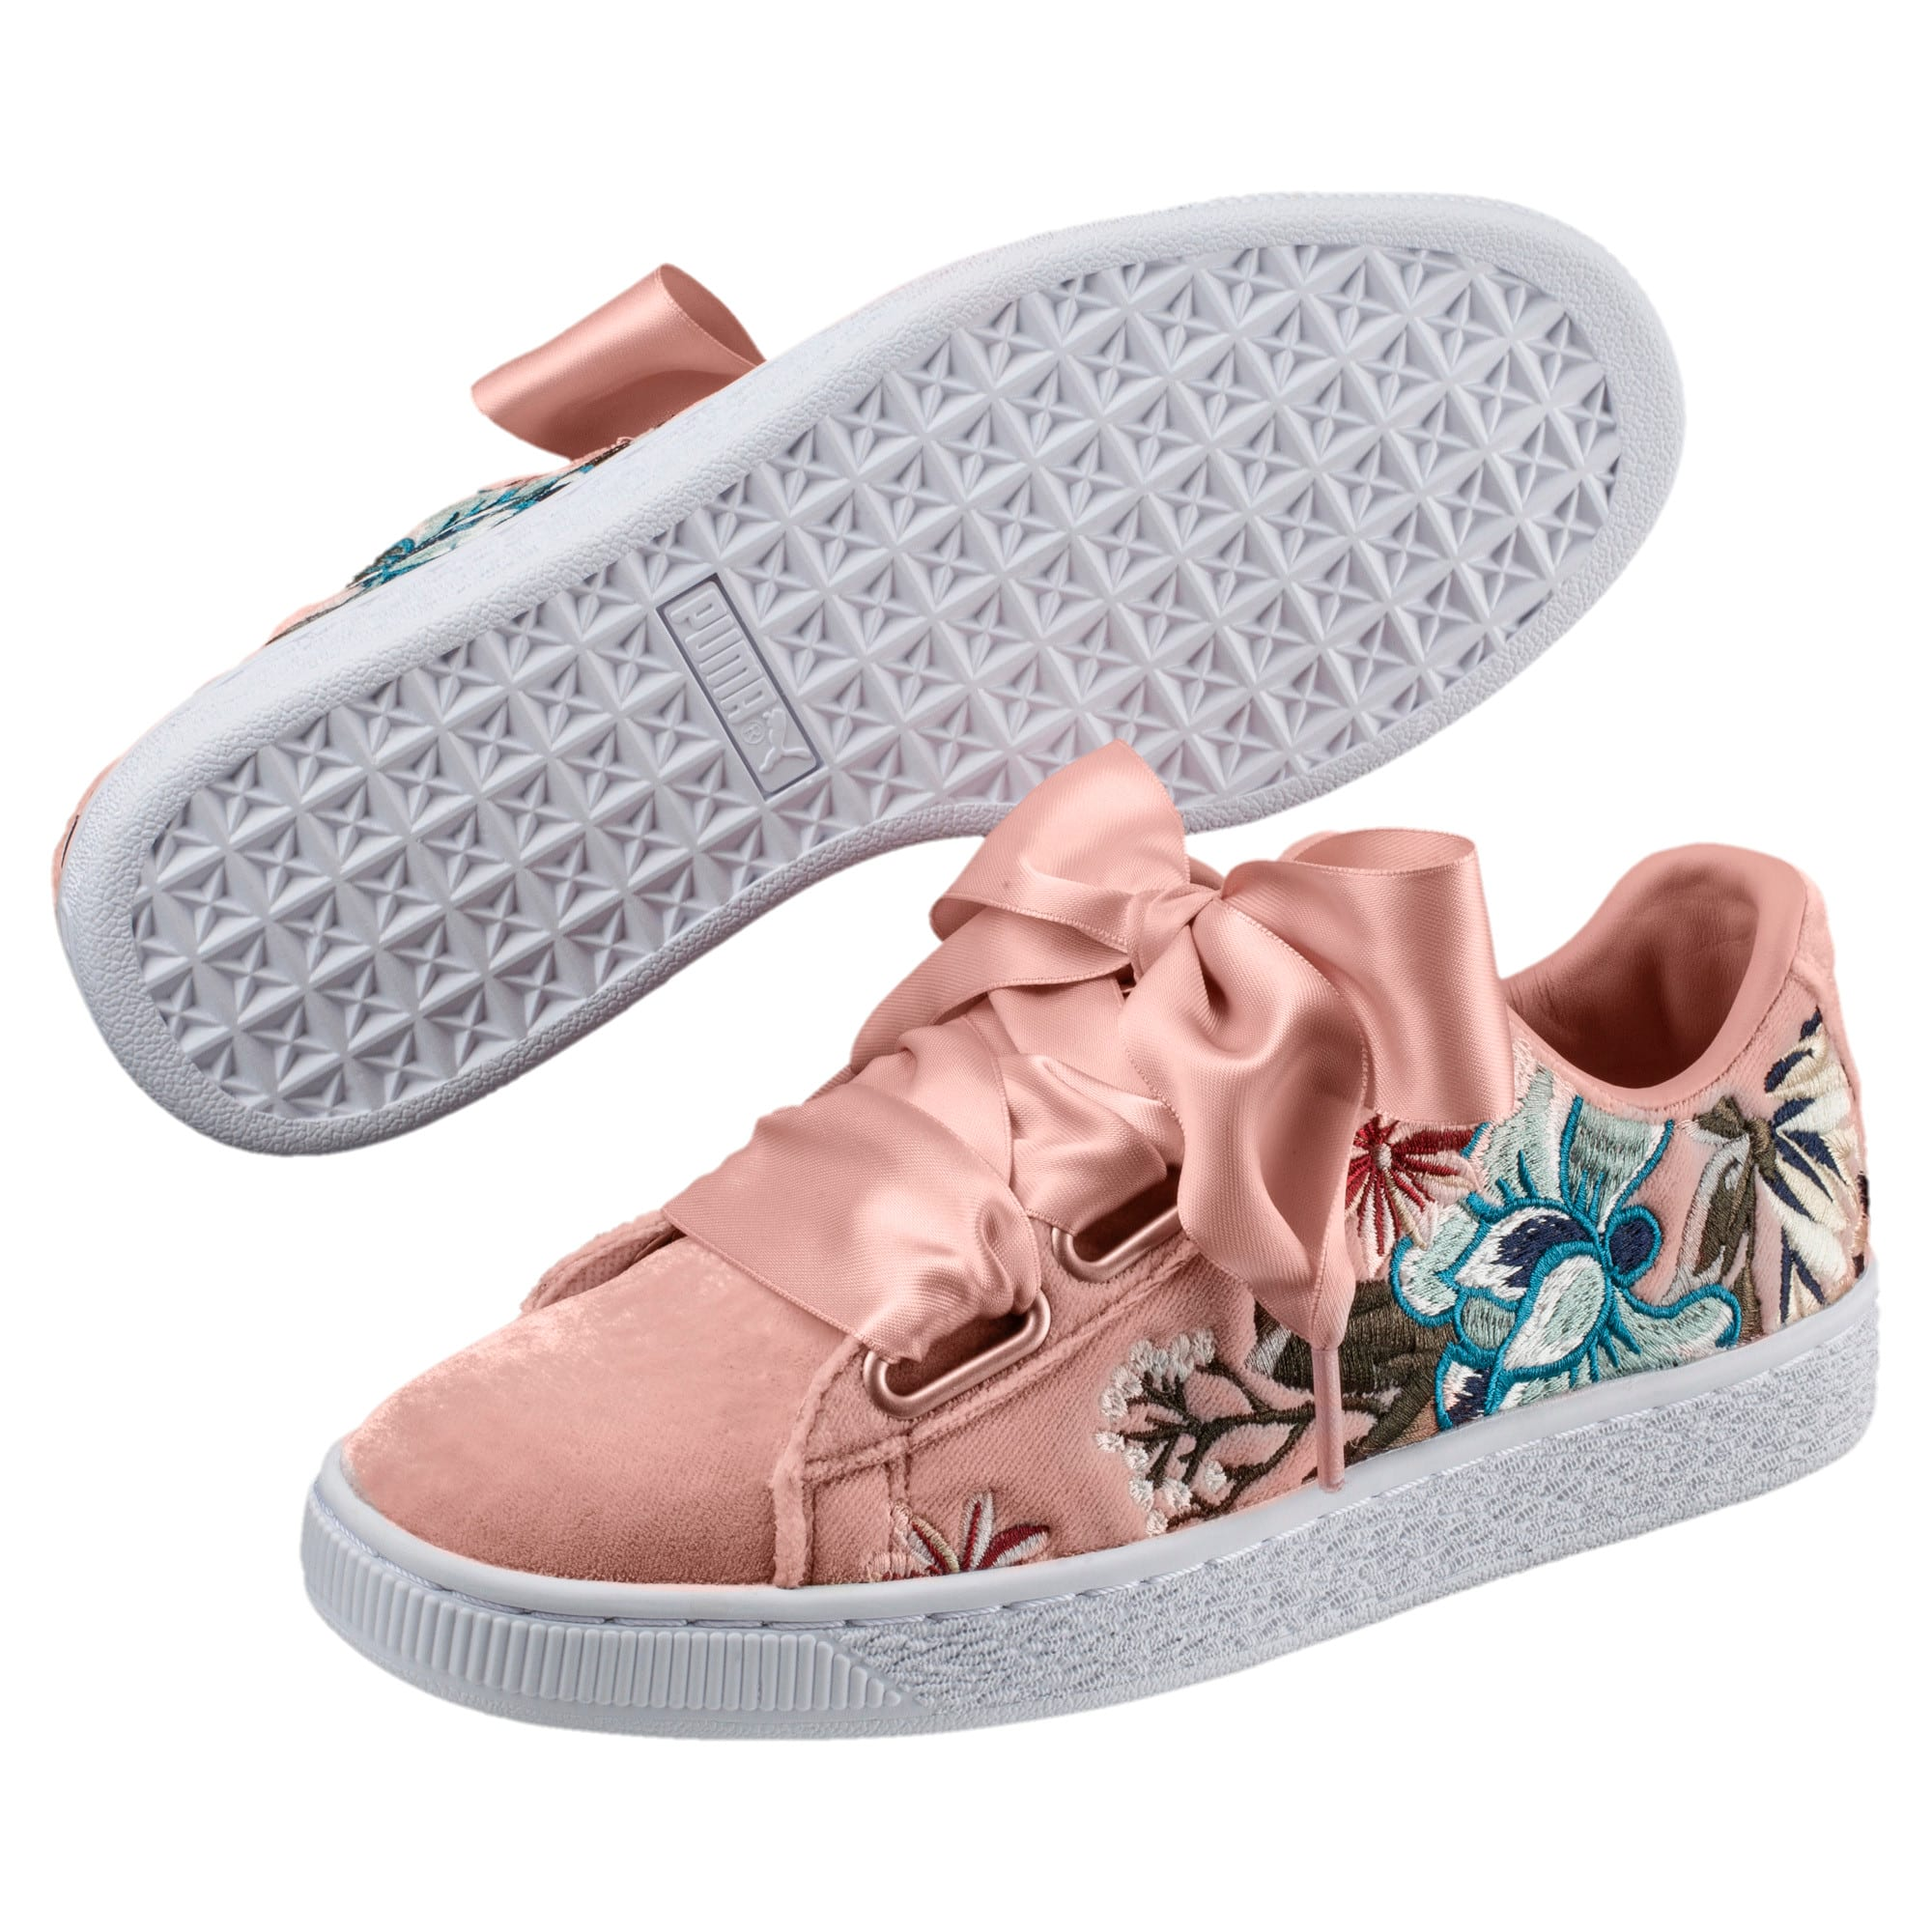 separation shoes 8a1b8 d4020 Basket Heart Hyper Women's Sneakers